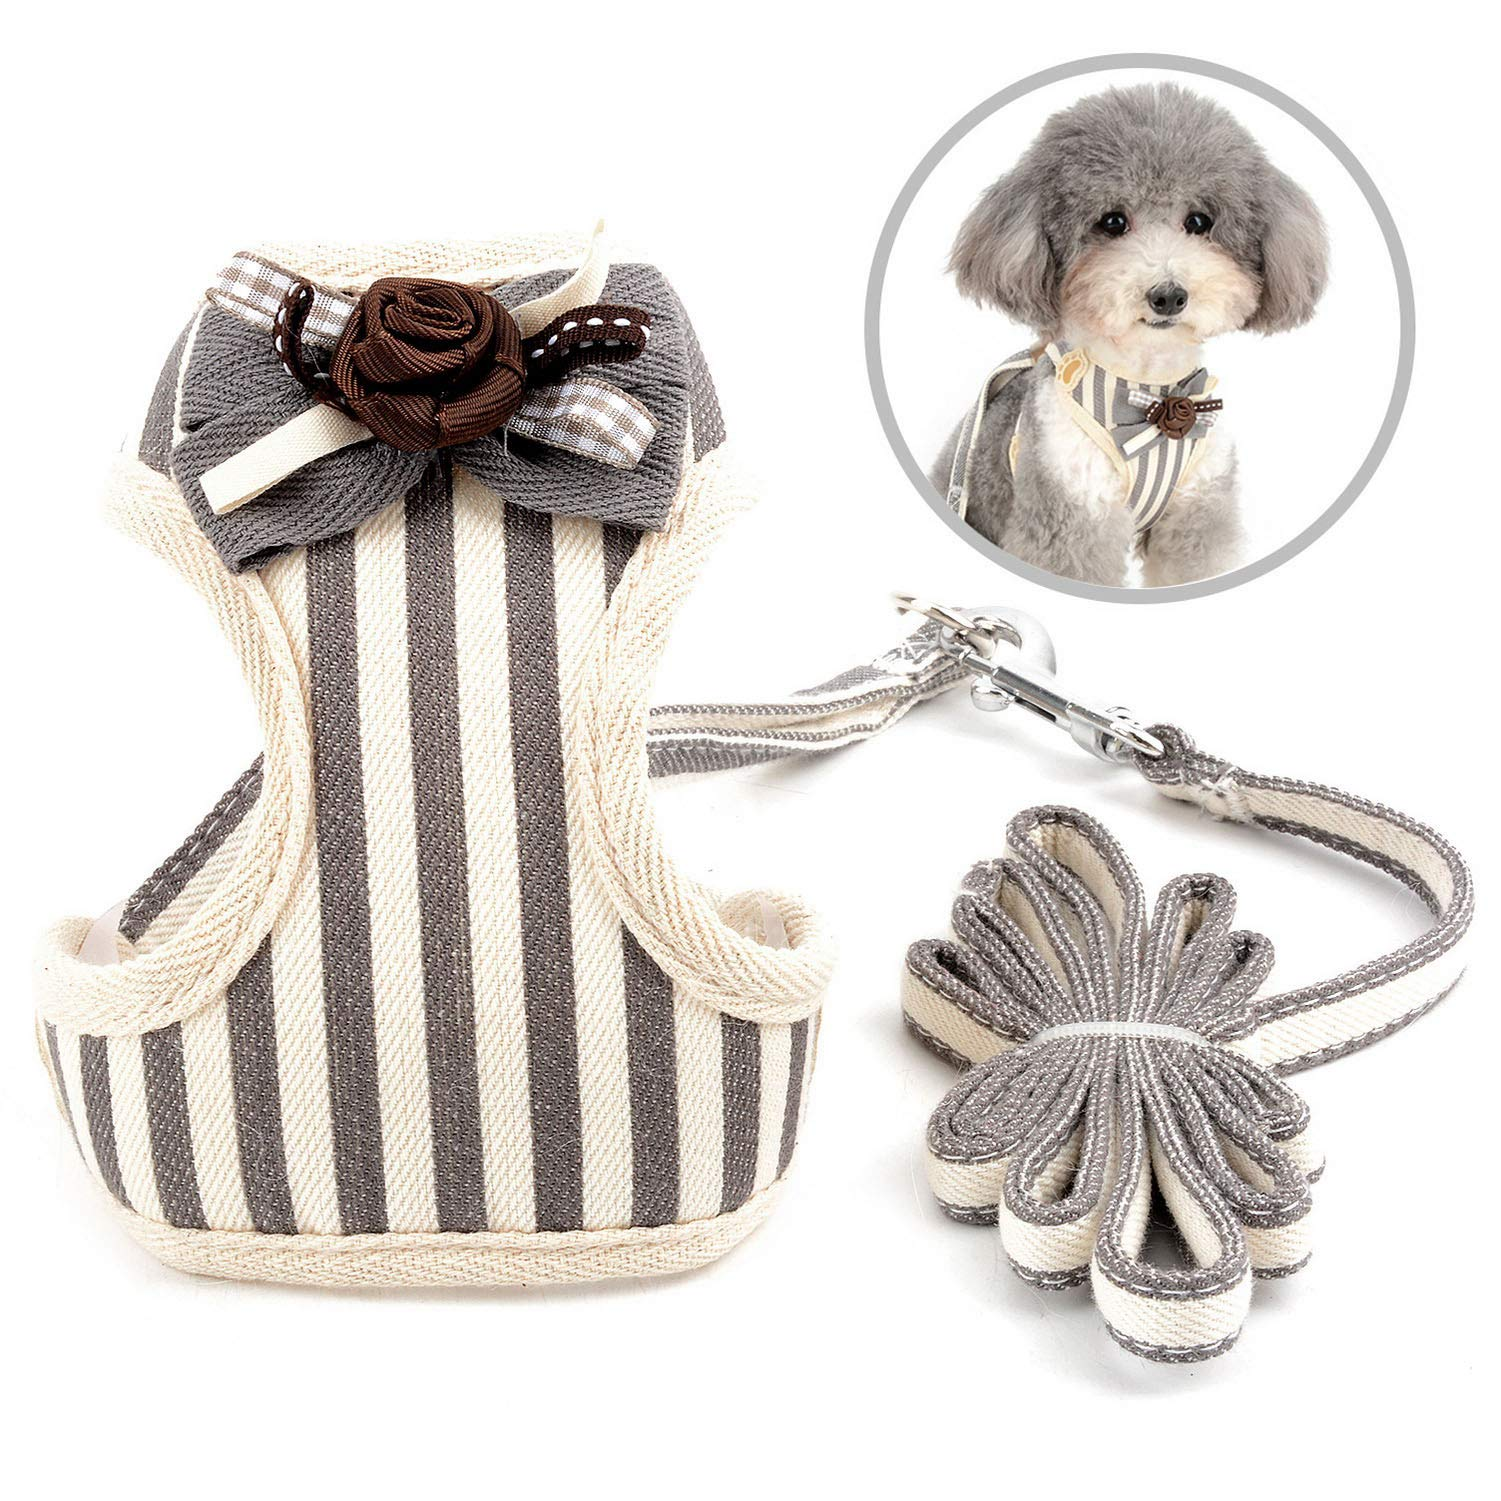 Zunea No Pull Dog Harness and Leash Set for Small Dogs Adjustable Striped Formal Tuxedo Vest Harnesses with Bow Tie for Puppy Girl Boy, Mesh Padded Pet Cat Harness Escape Proof for Walking Gray L